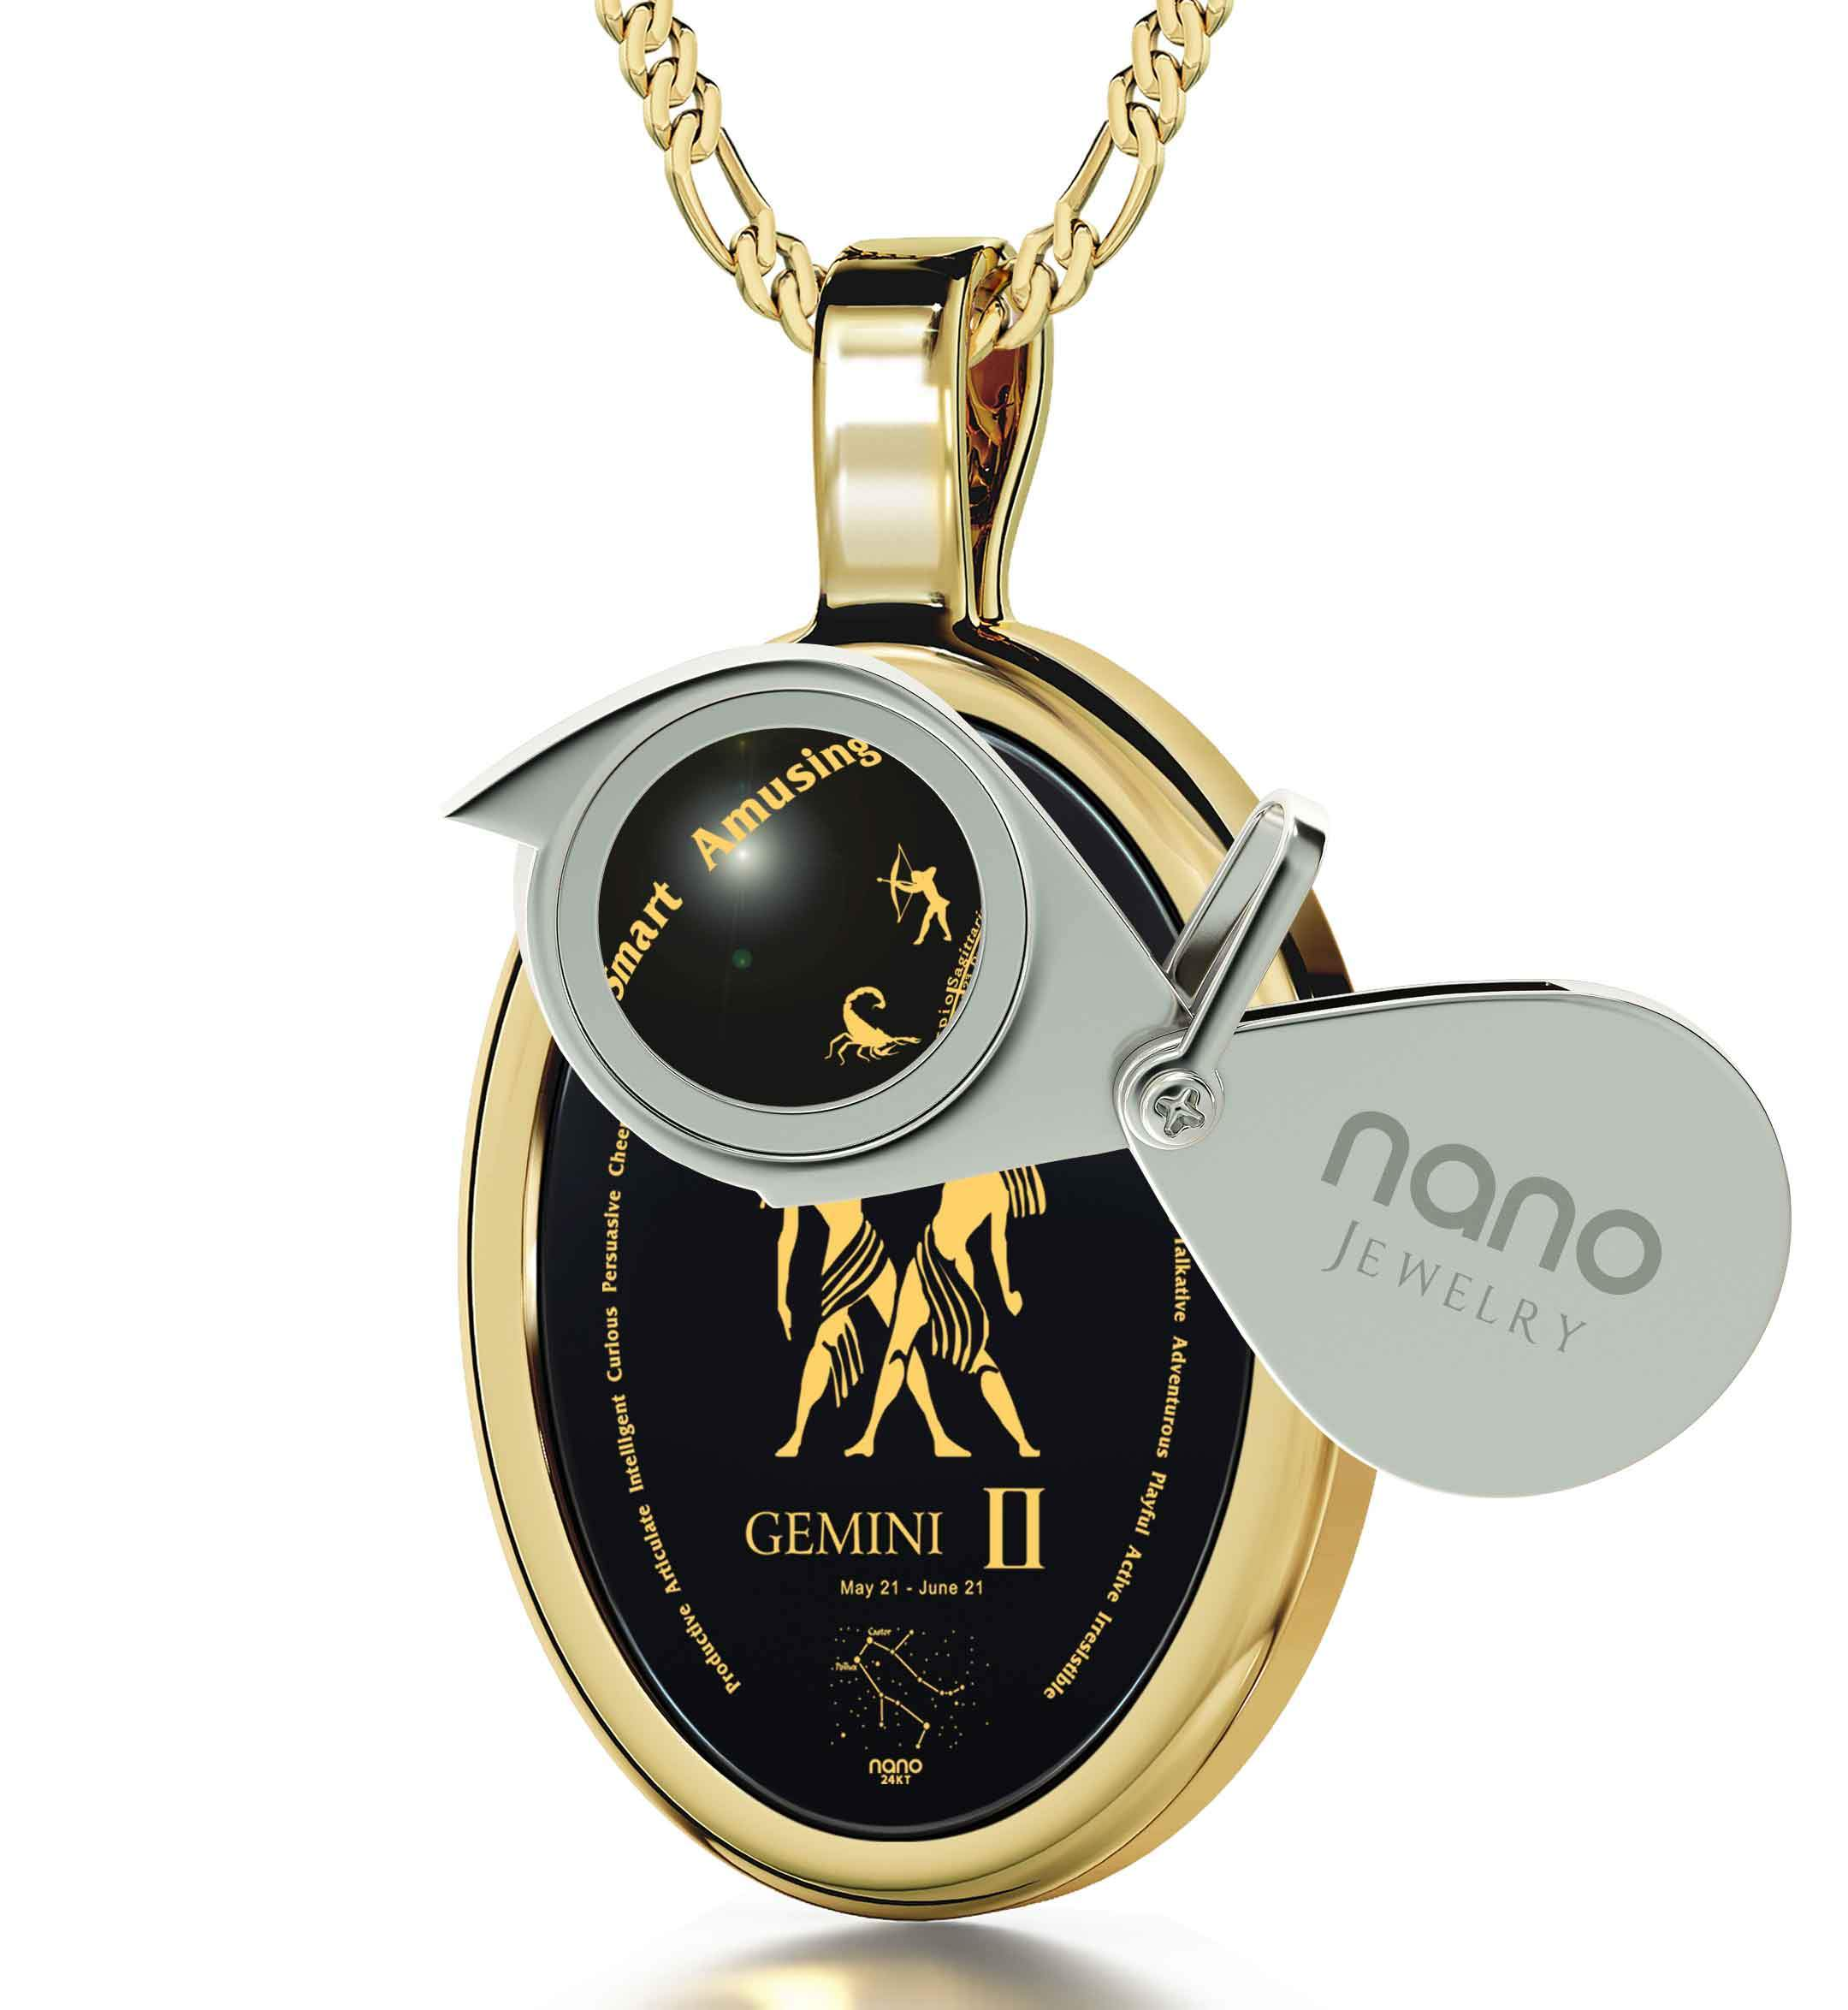 Wife Birthday Ideas: Zodiac Sign Necklace, Women's 14k Gold Jewelry, What to Buy My Girlfriend for Christmas by Nano